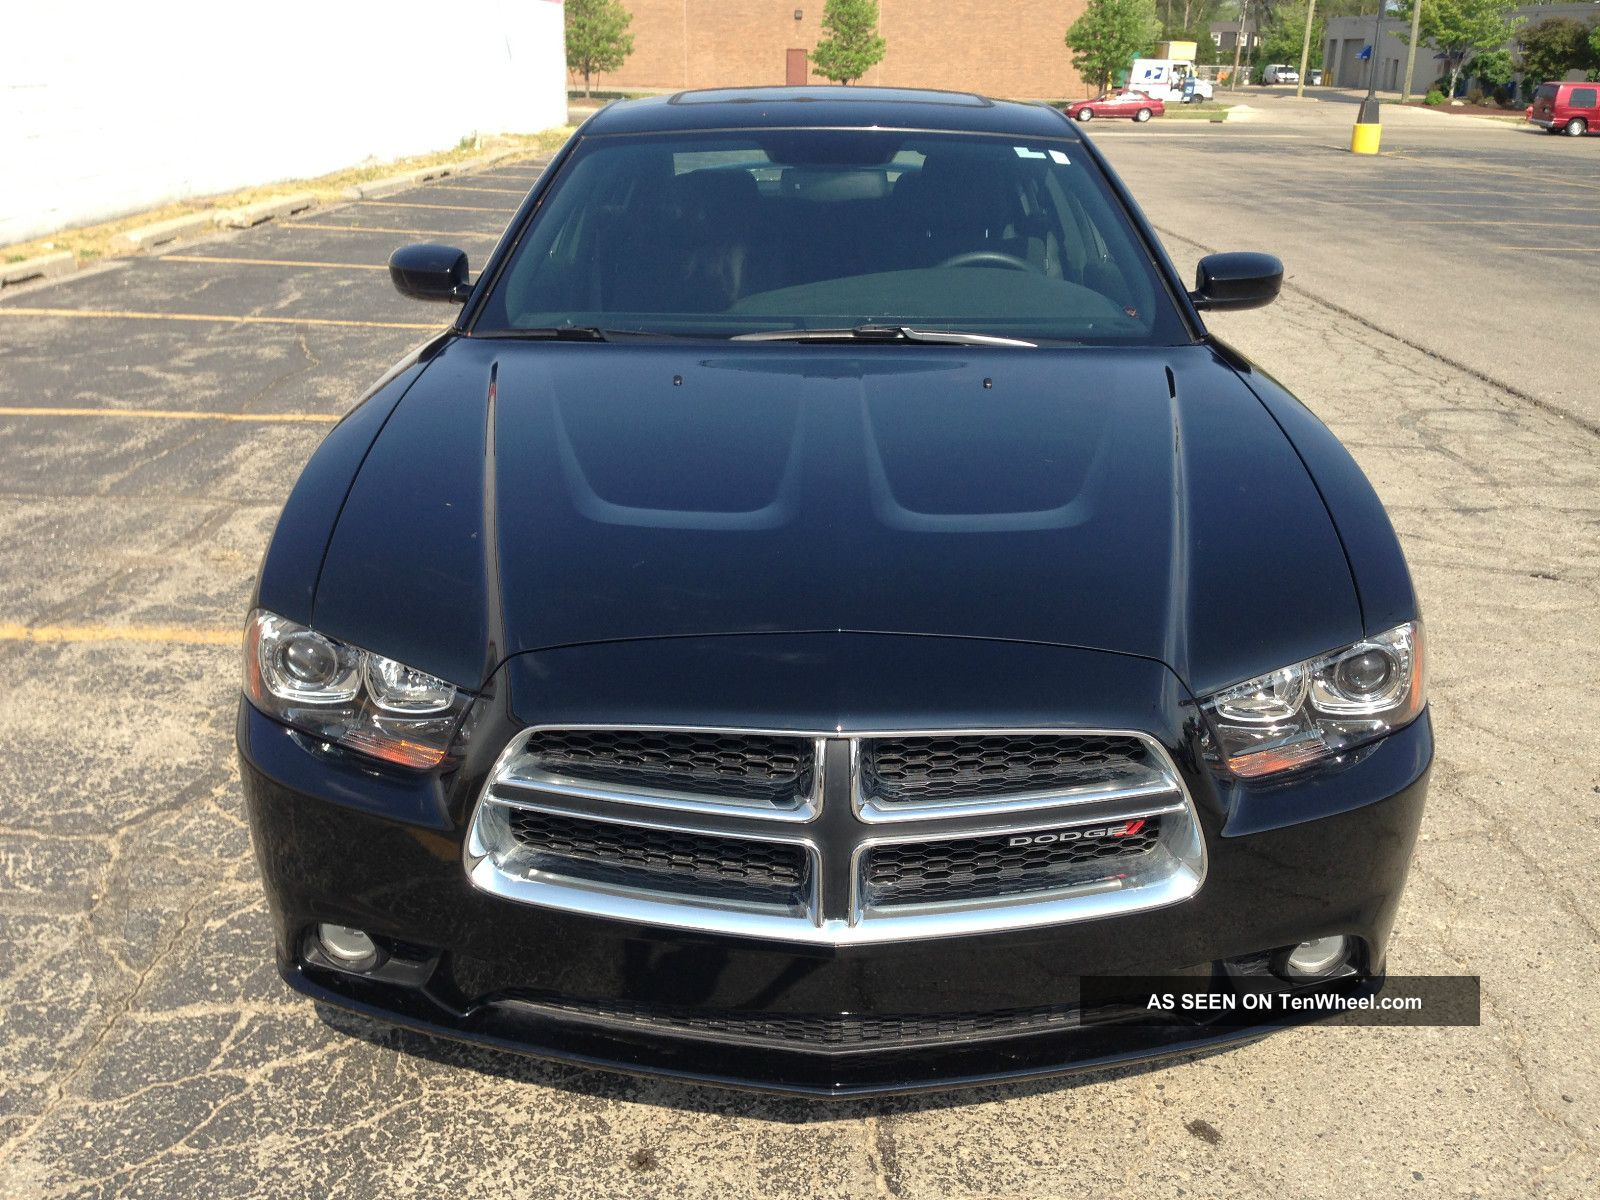 2012 Dodge Charger R / T Hemi (w12134) Charger photo